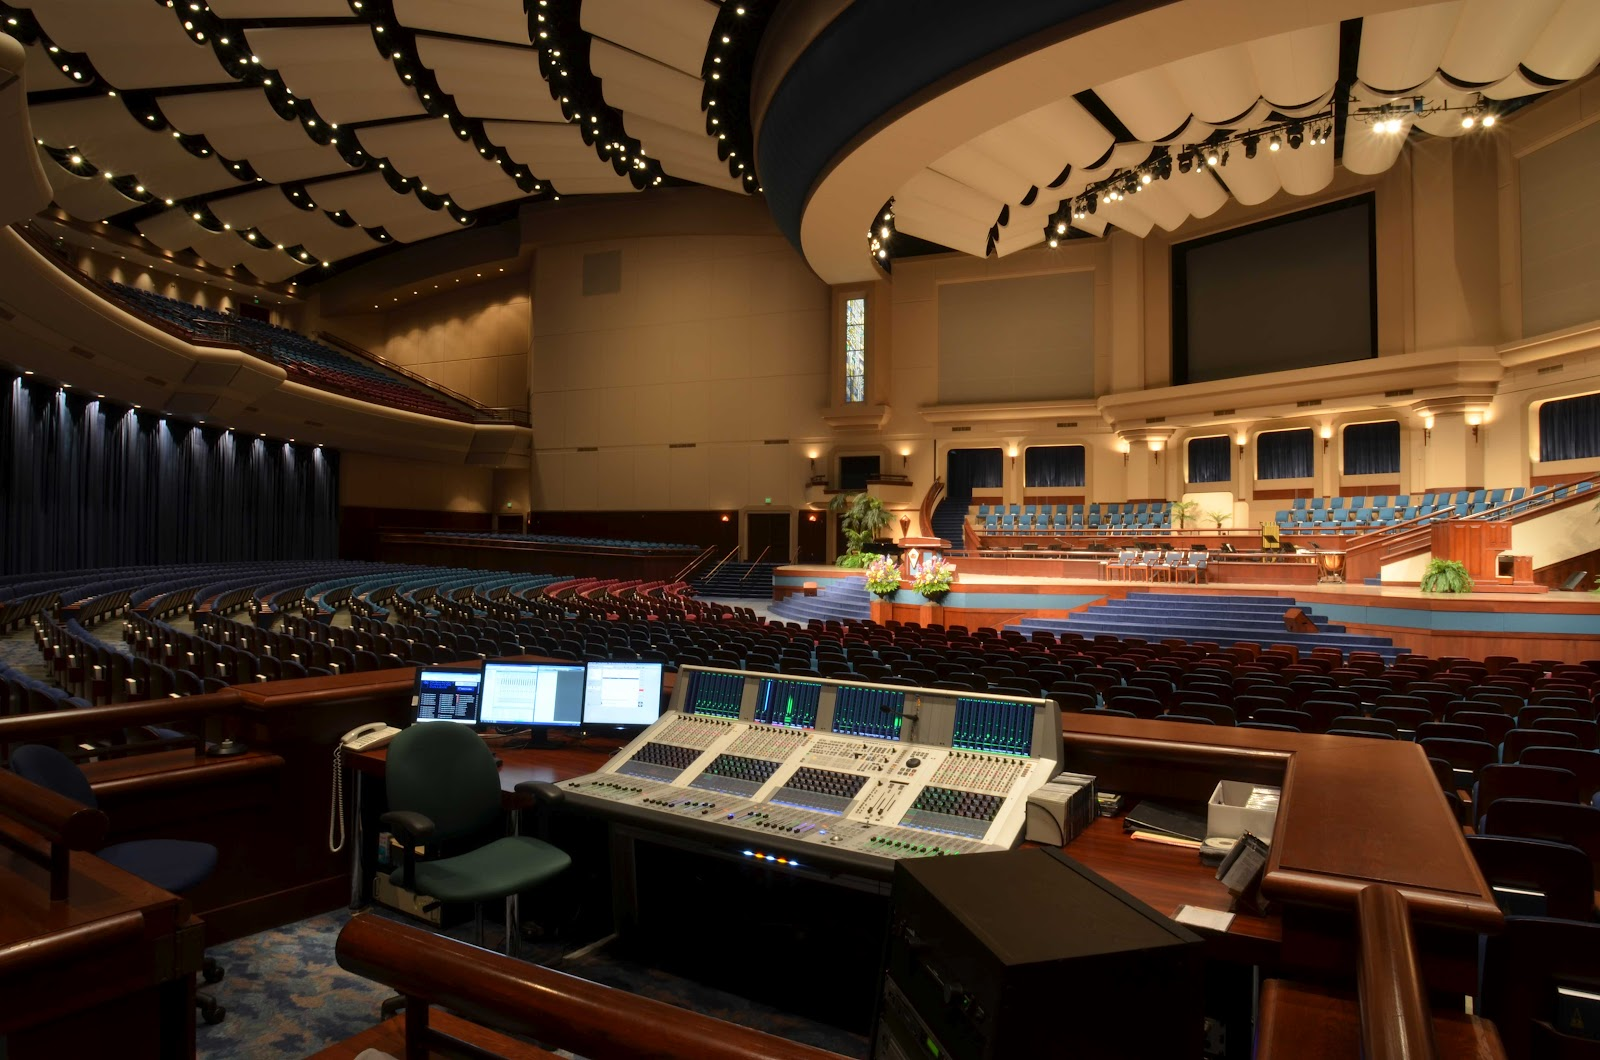 Crowne Centre Auditorium At Pensacola Christian College